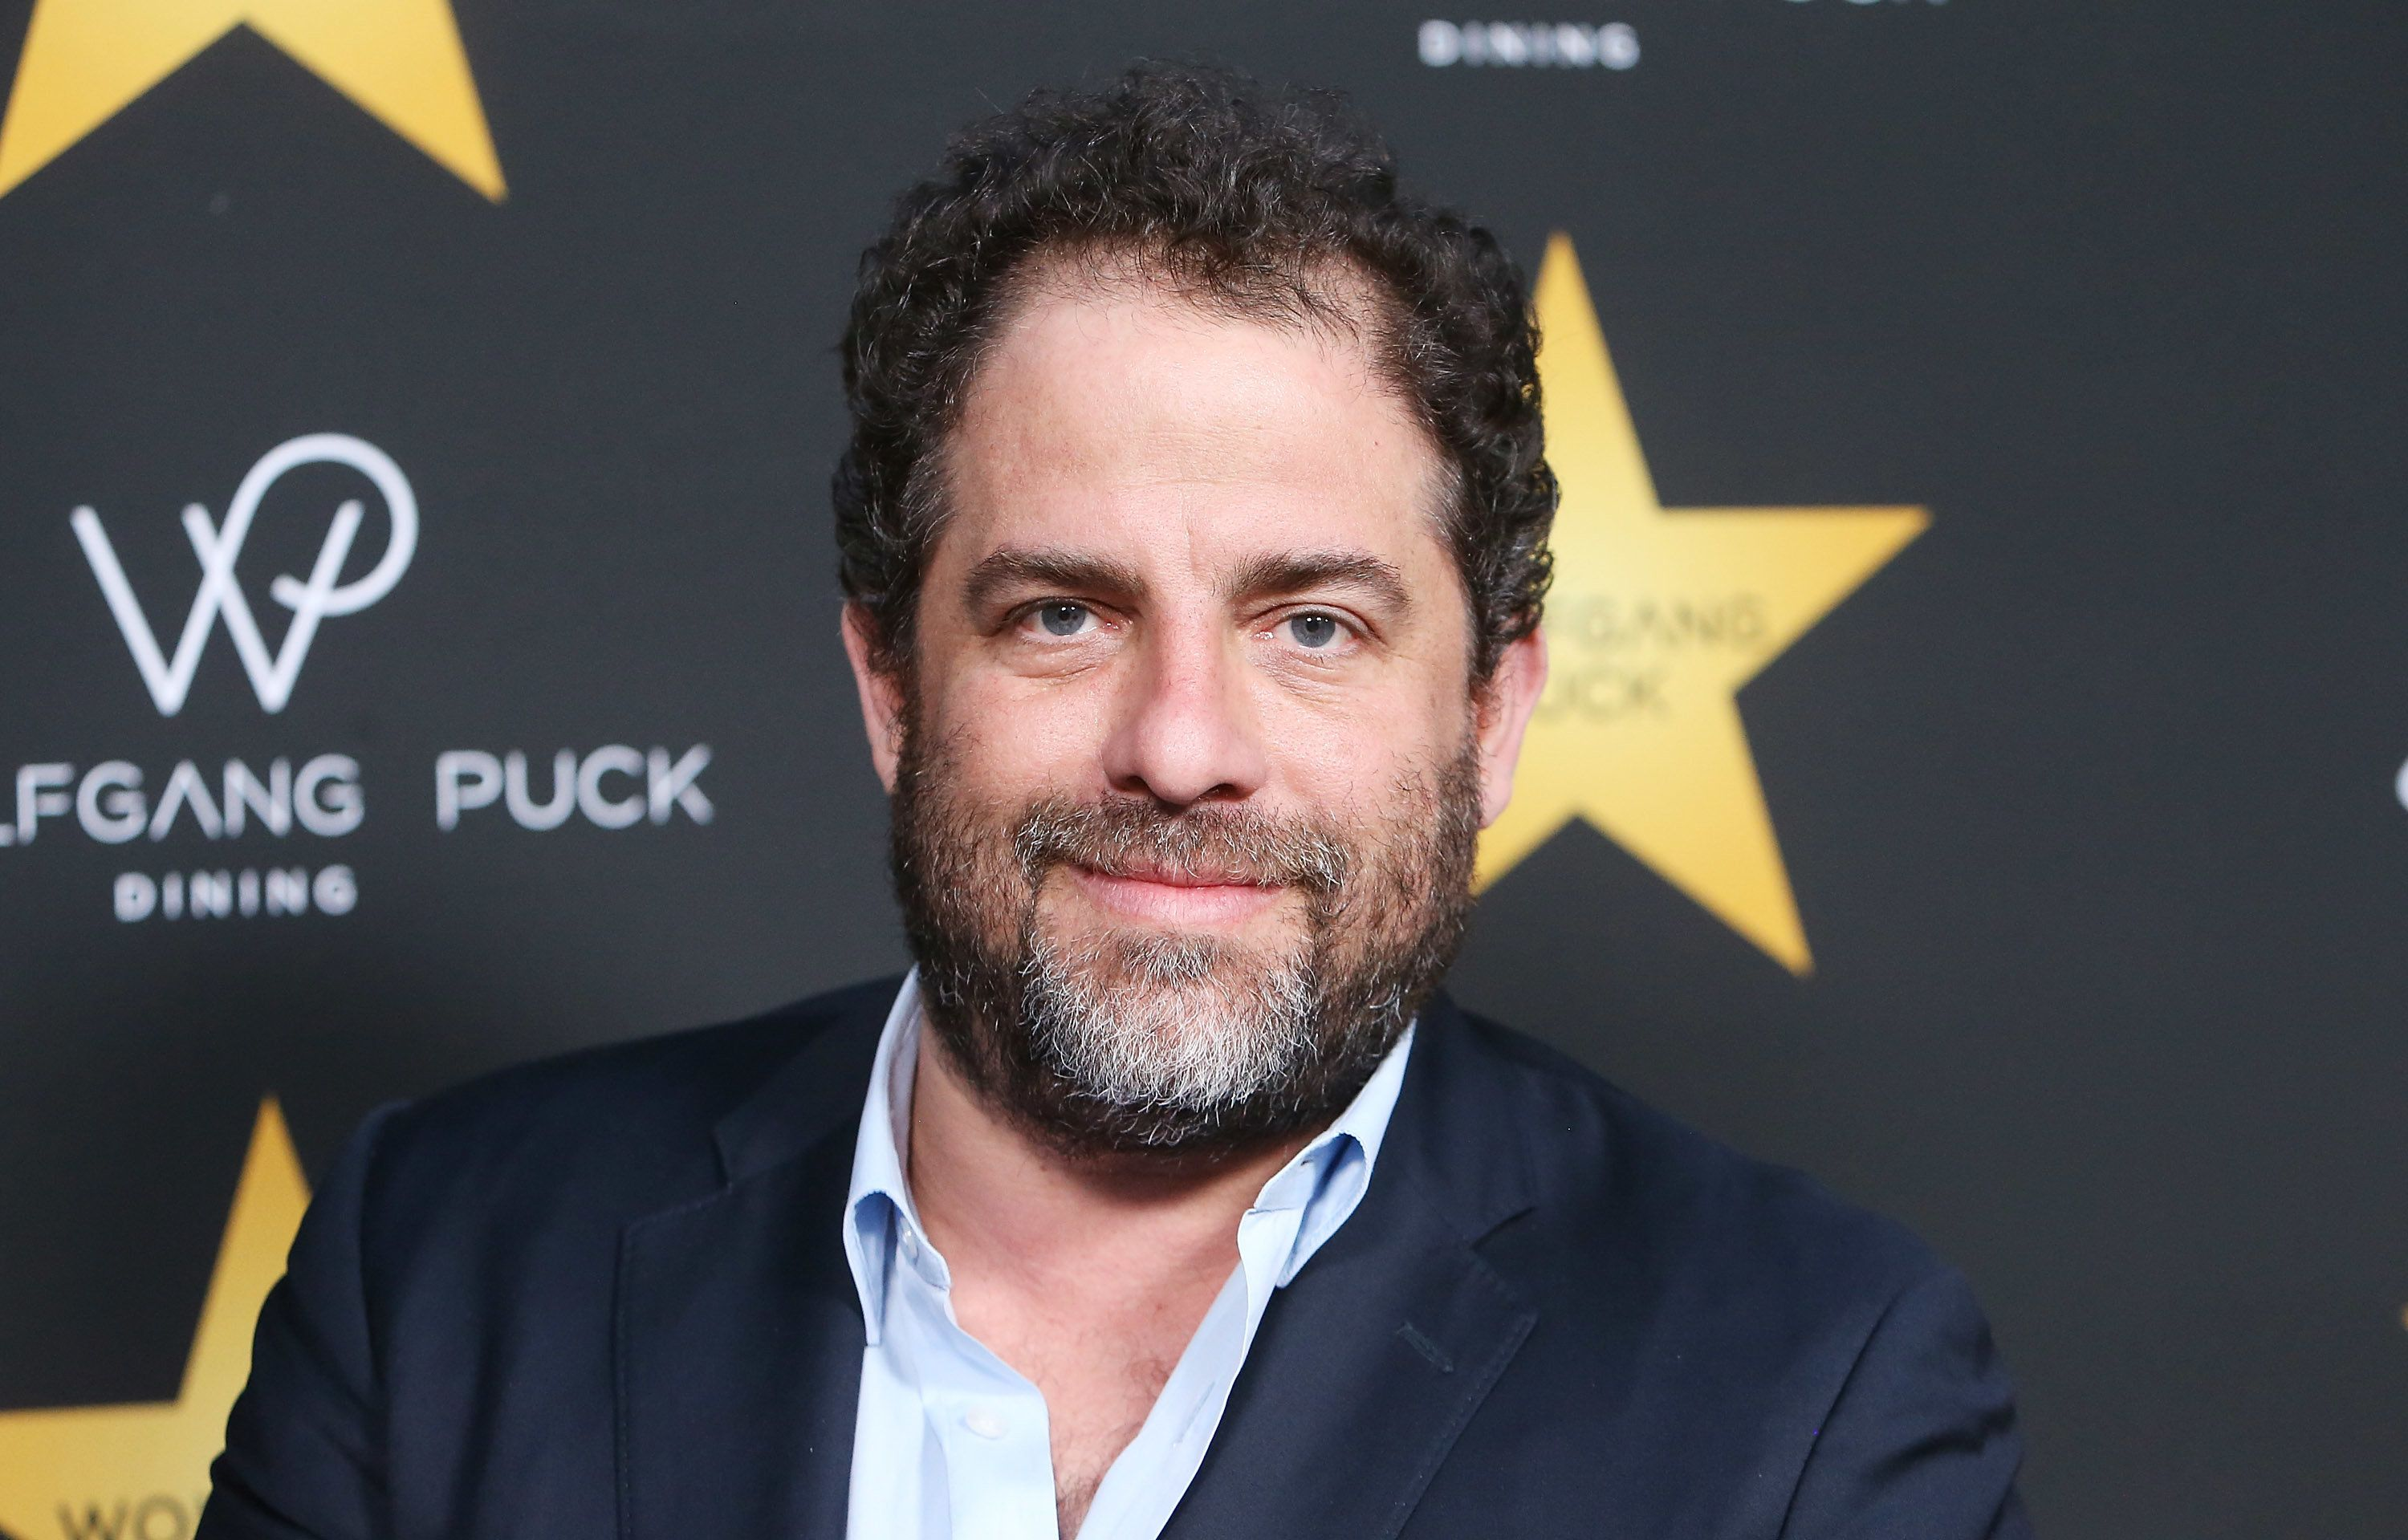 At least seven women have accused Hollywood producer Brett Ratner of sexual harassment or